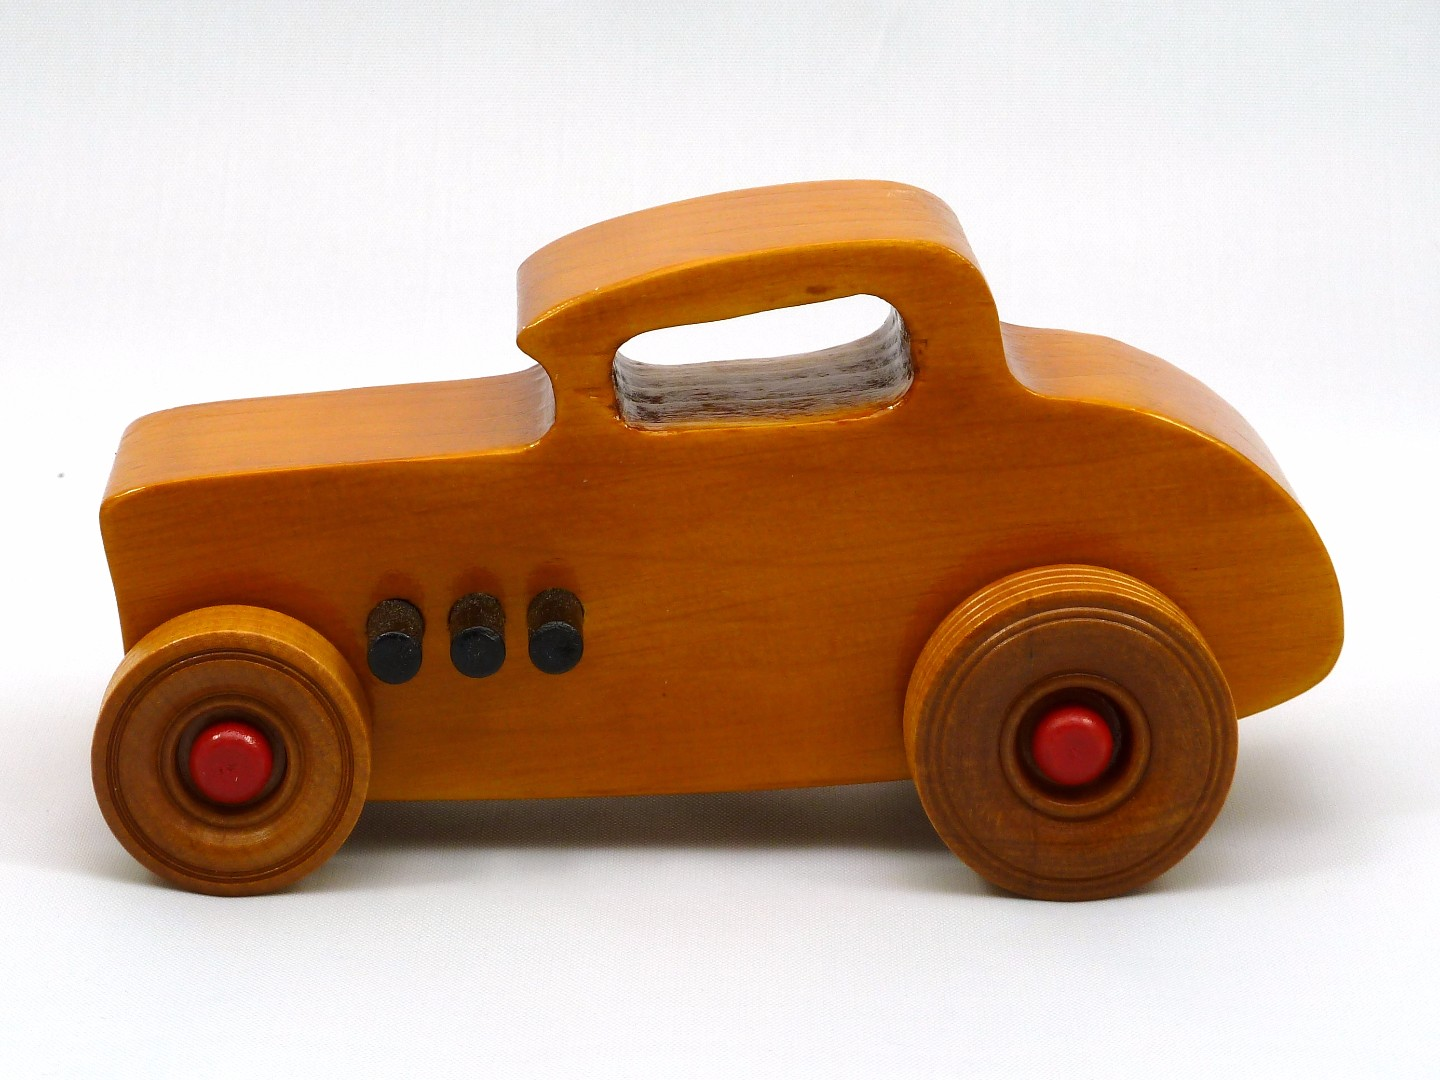 20170902-171505 Wooden Toy Car - Hot Rod Freaky Ford - 32 Deuce Coupe - Pine - Amber Shellac - Red.jpg